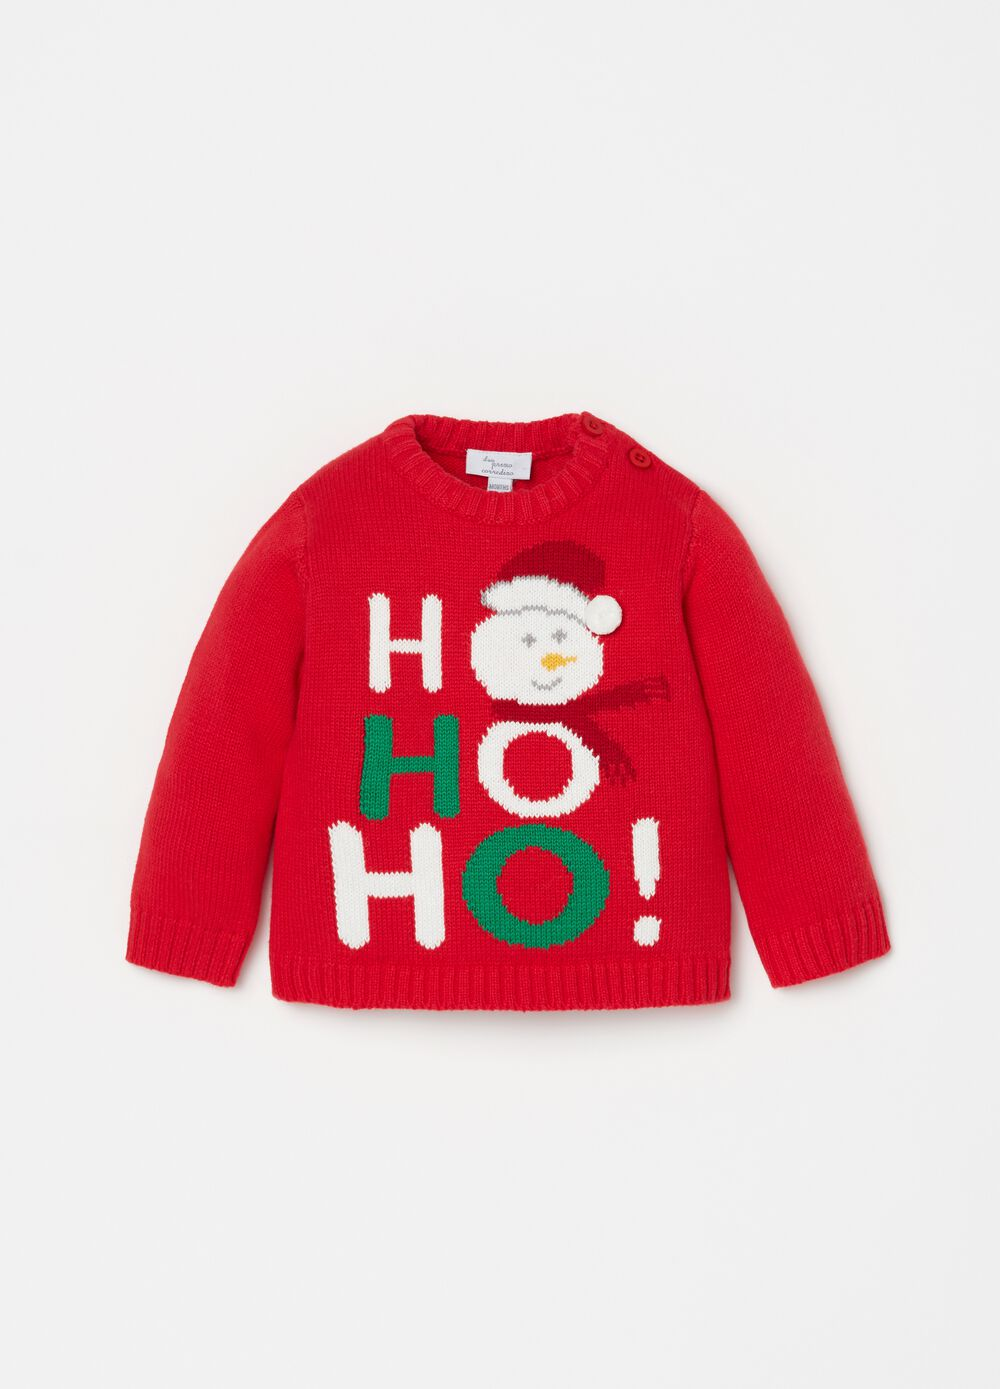 100% cotton top with Christmas embroidery